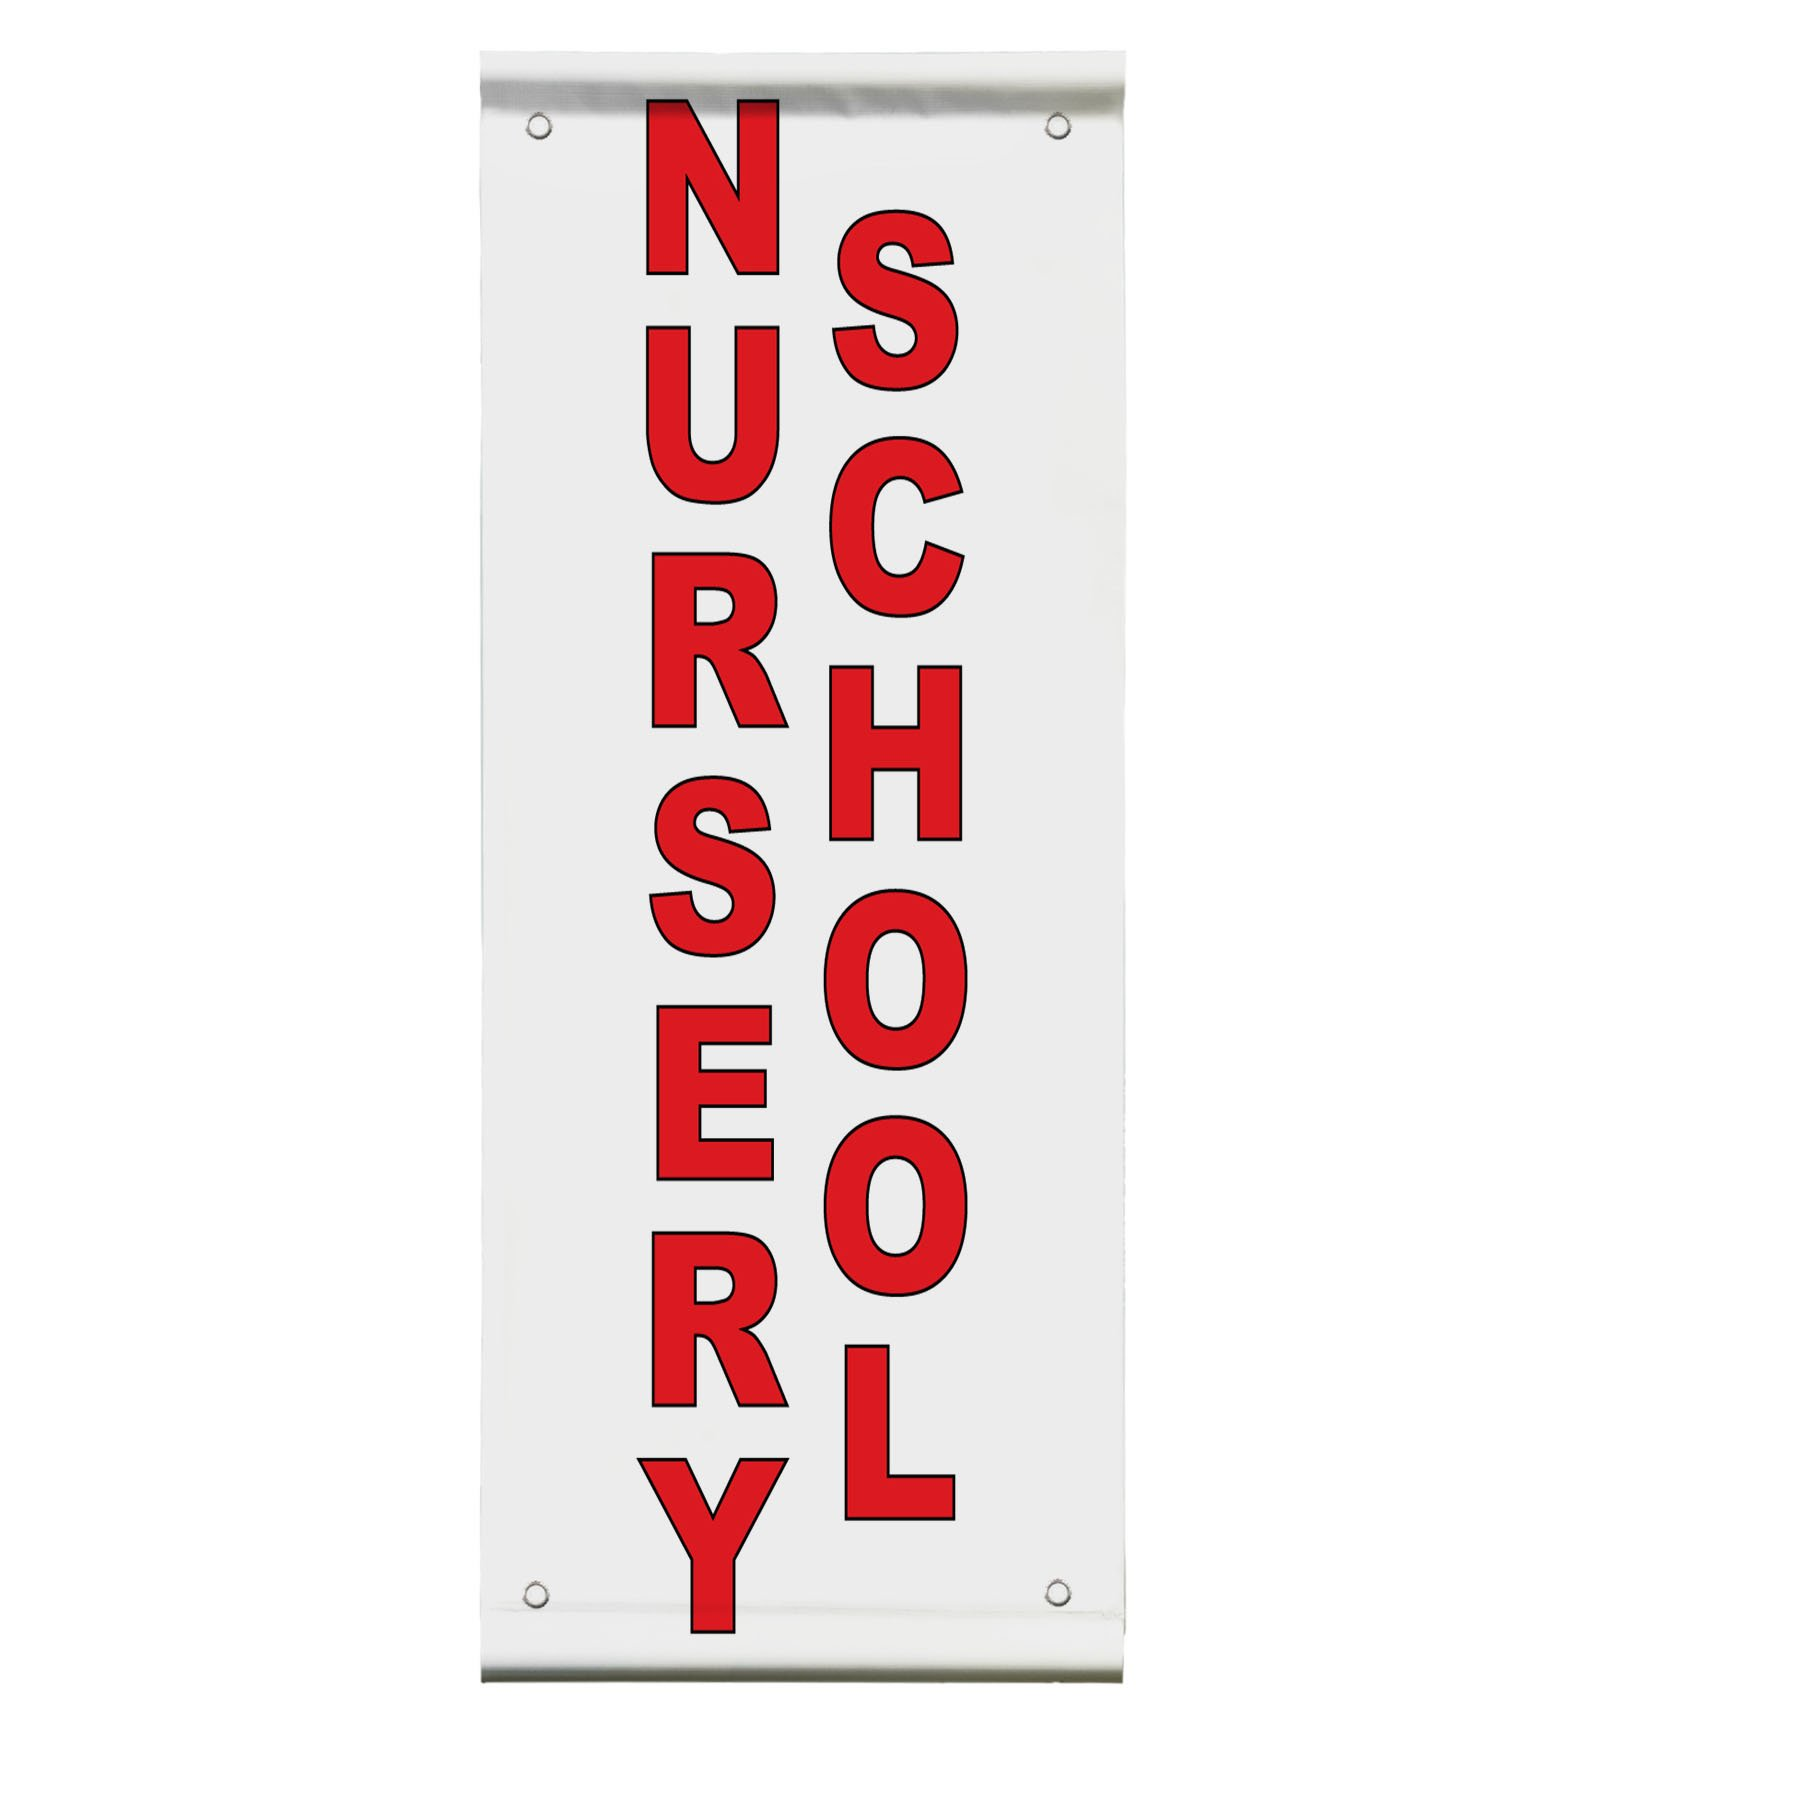 Nursery School Red Double Sided Vertical Pole Banner Sign 36 in x 72 in